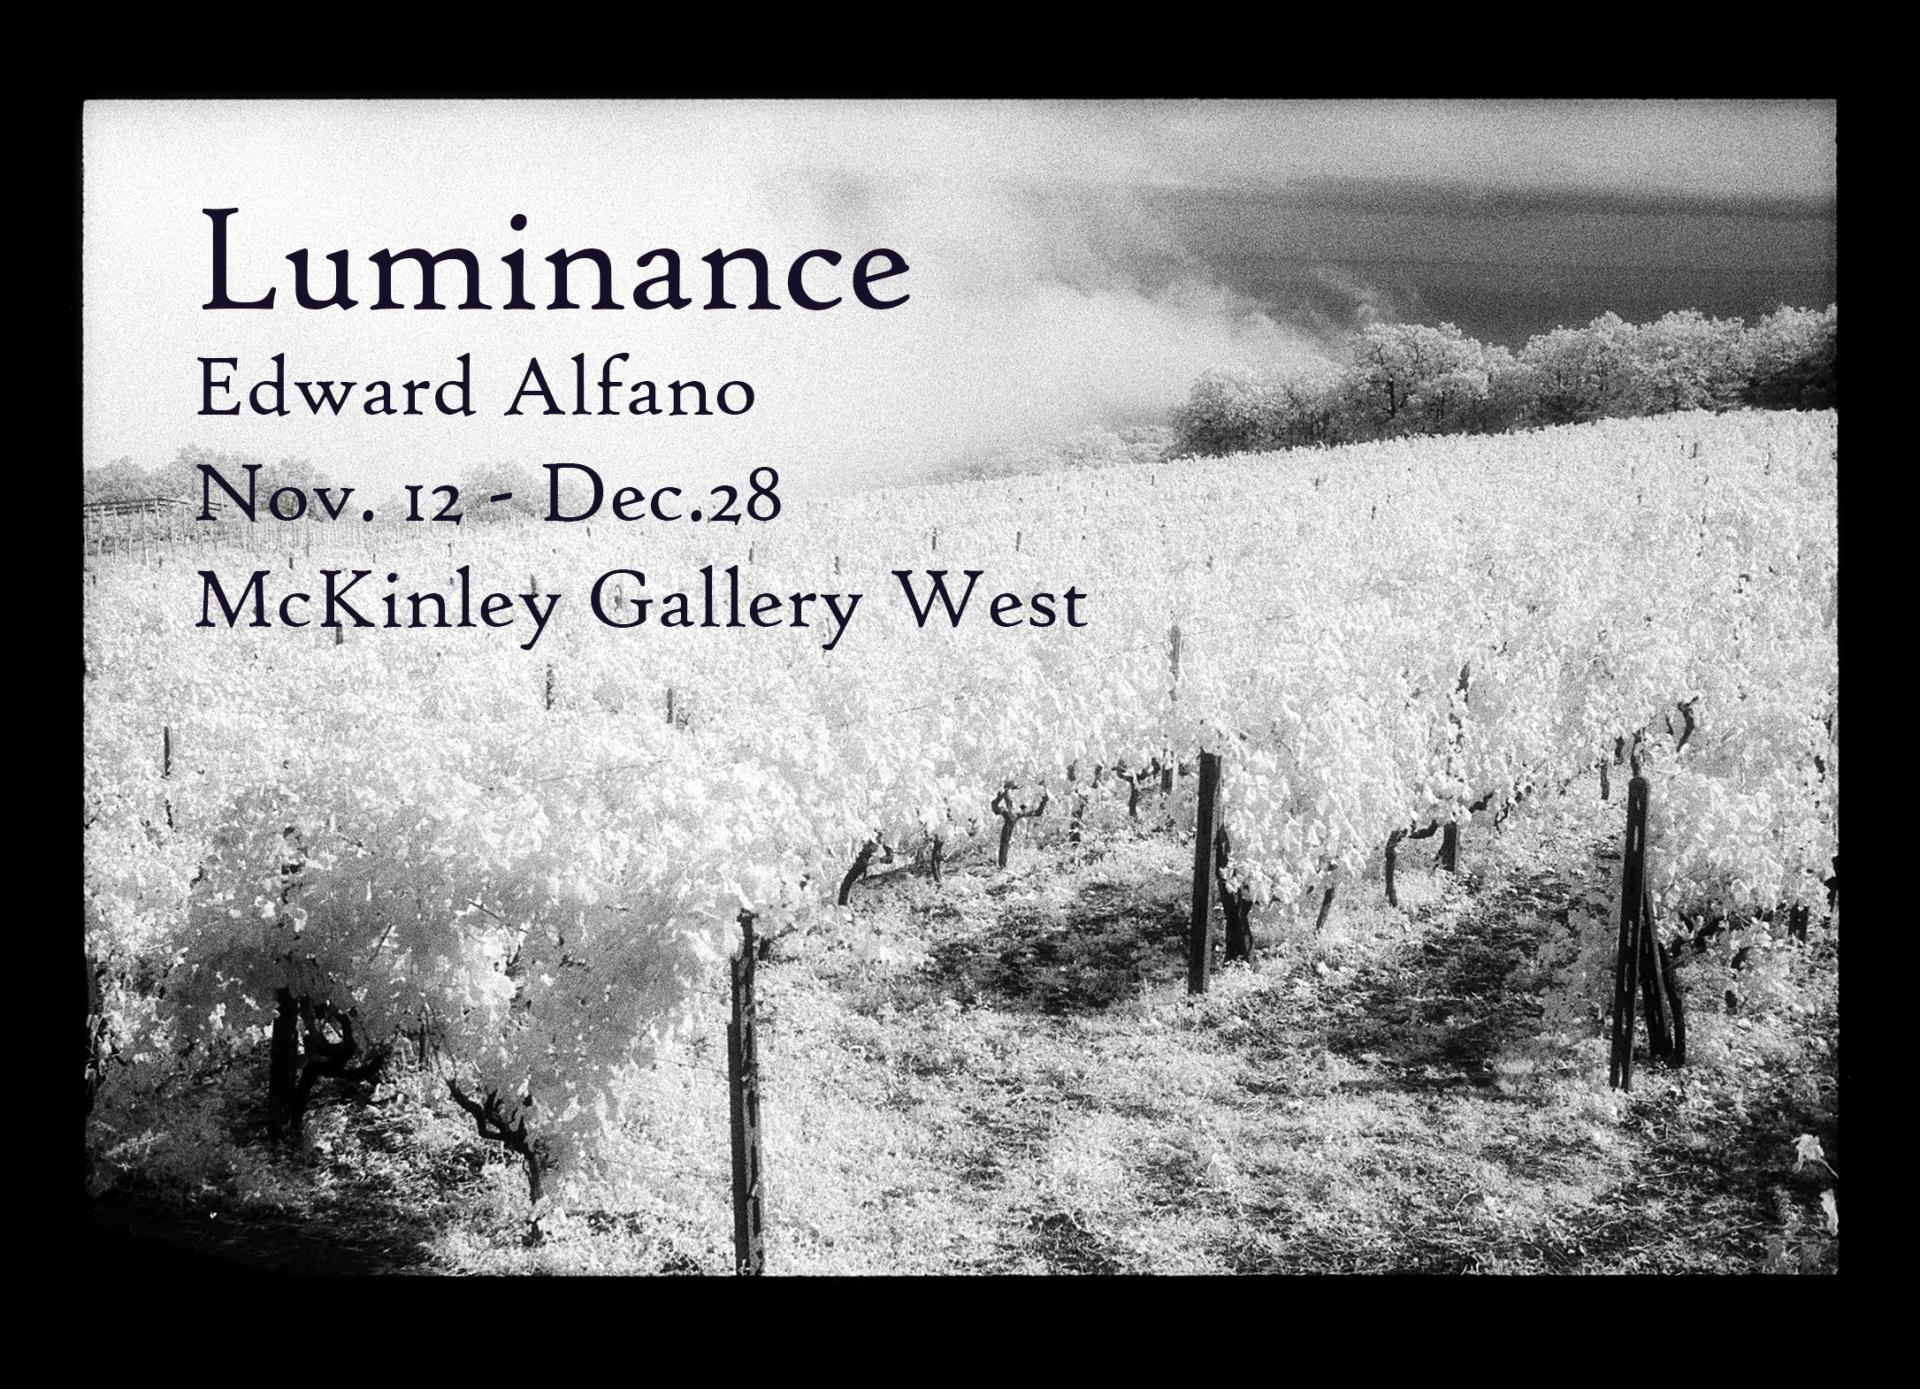 A black and white photograph of a wine vineyard with smoke in the background. Luminance. Photographs by Edward Alfano. November 12 to December 28. McKinley Gallery West. Reception December 6 from 5 to 7 pm.